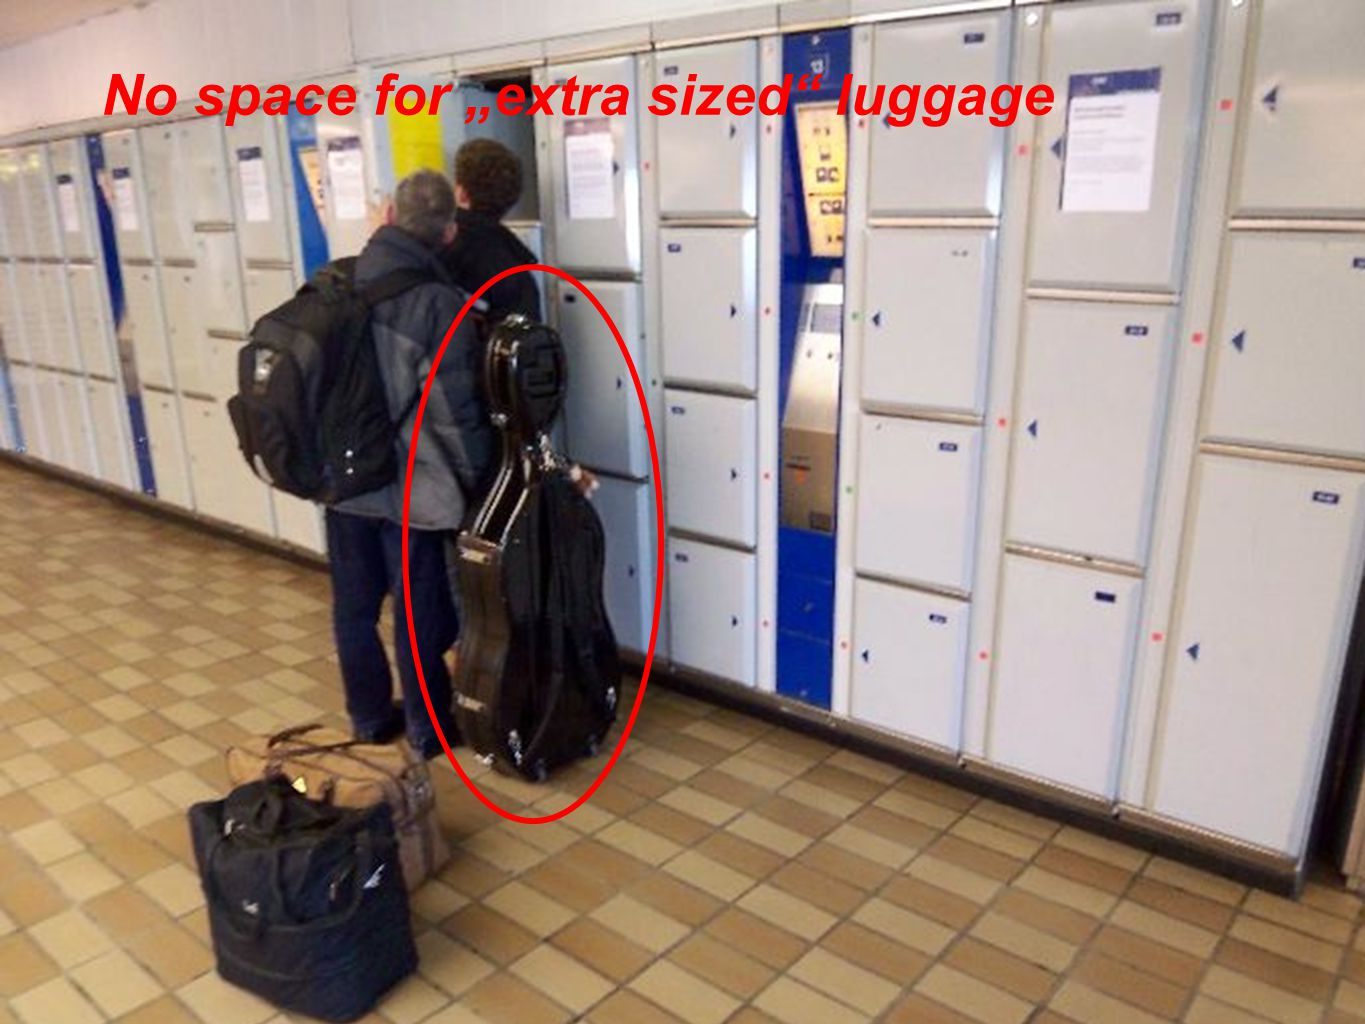 LUGGAGE LOCKERS - NEEDS AND EXPECTATION OF PASSENGERS - ZEL 2011, ZILINA JUNE 2011 No space for extra sized luggage